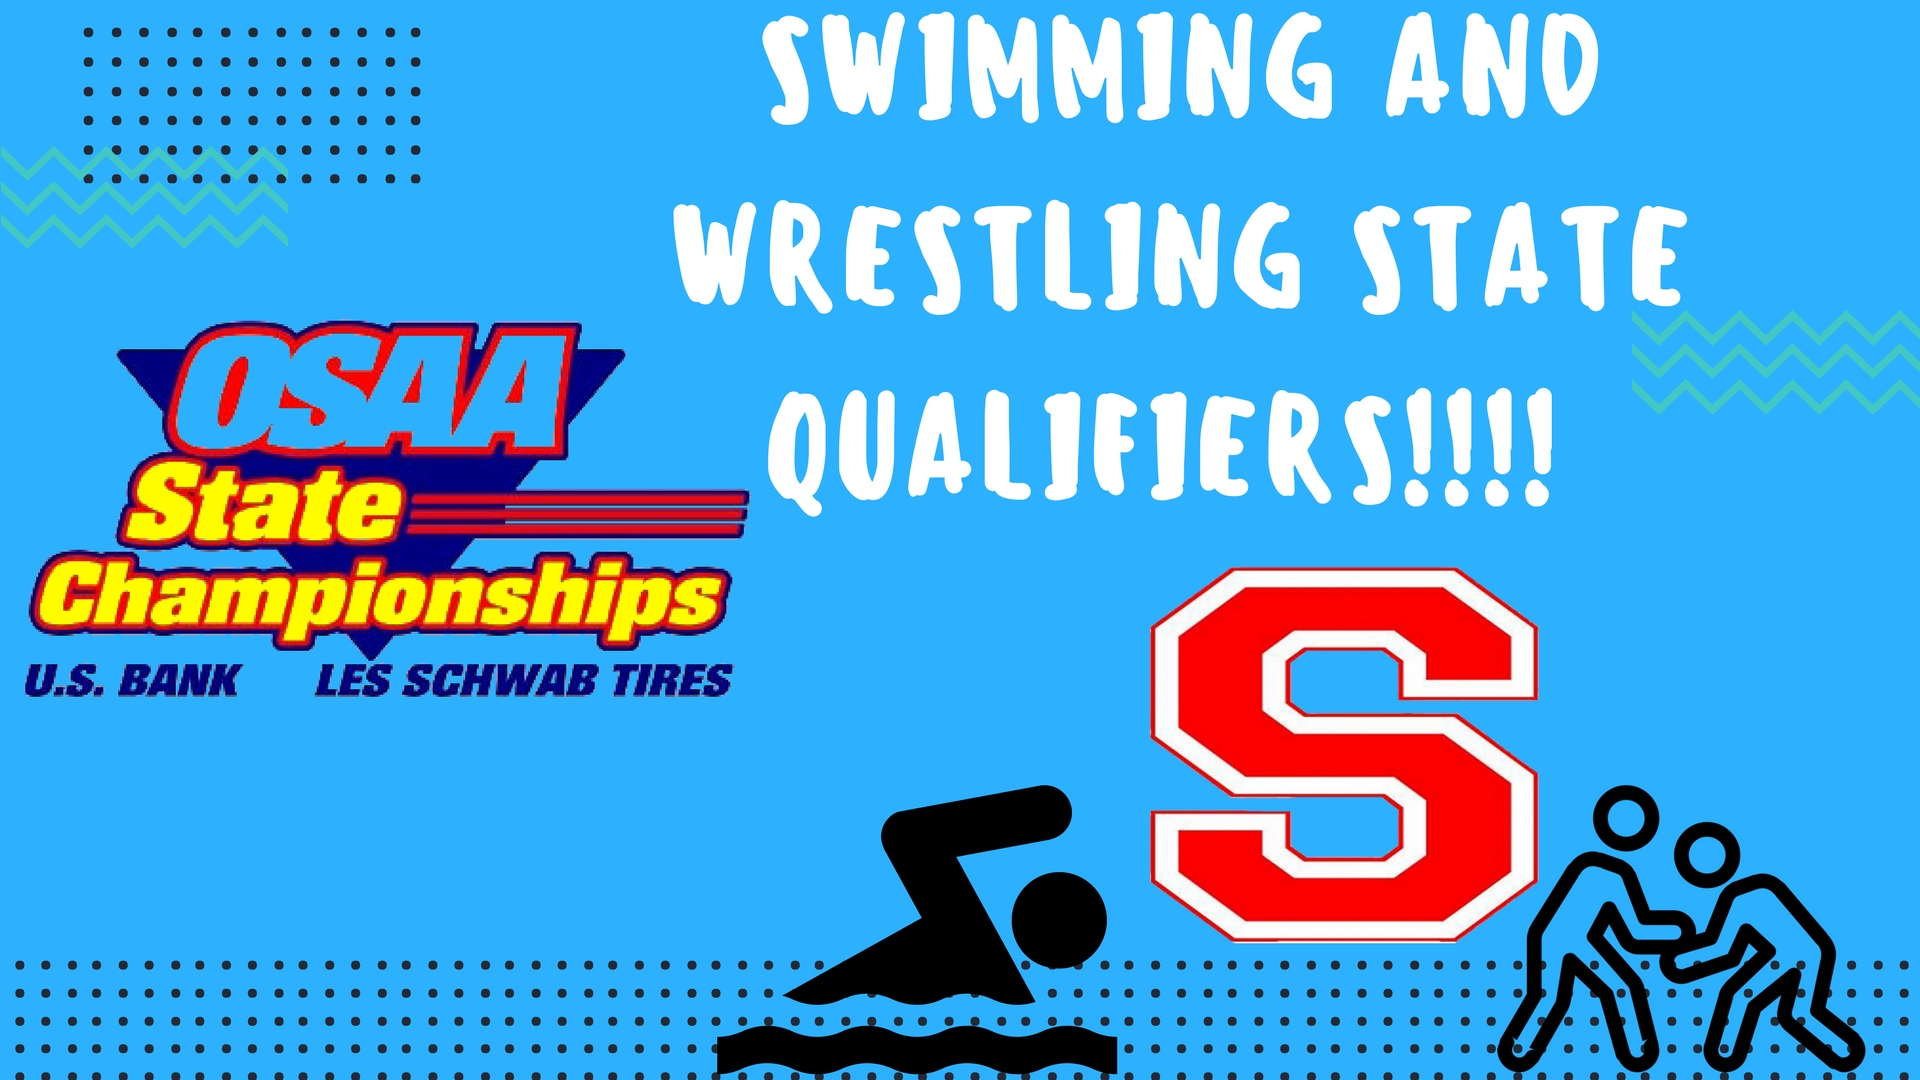 Swimming and Wrestling State Qualifiers!!!!